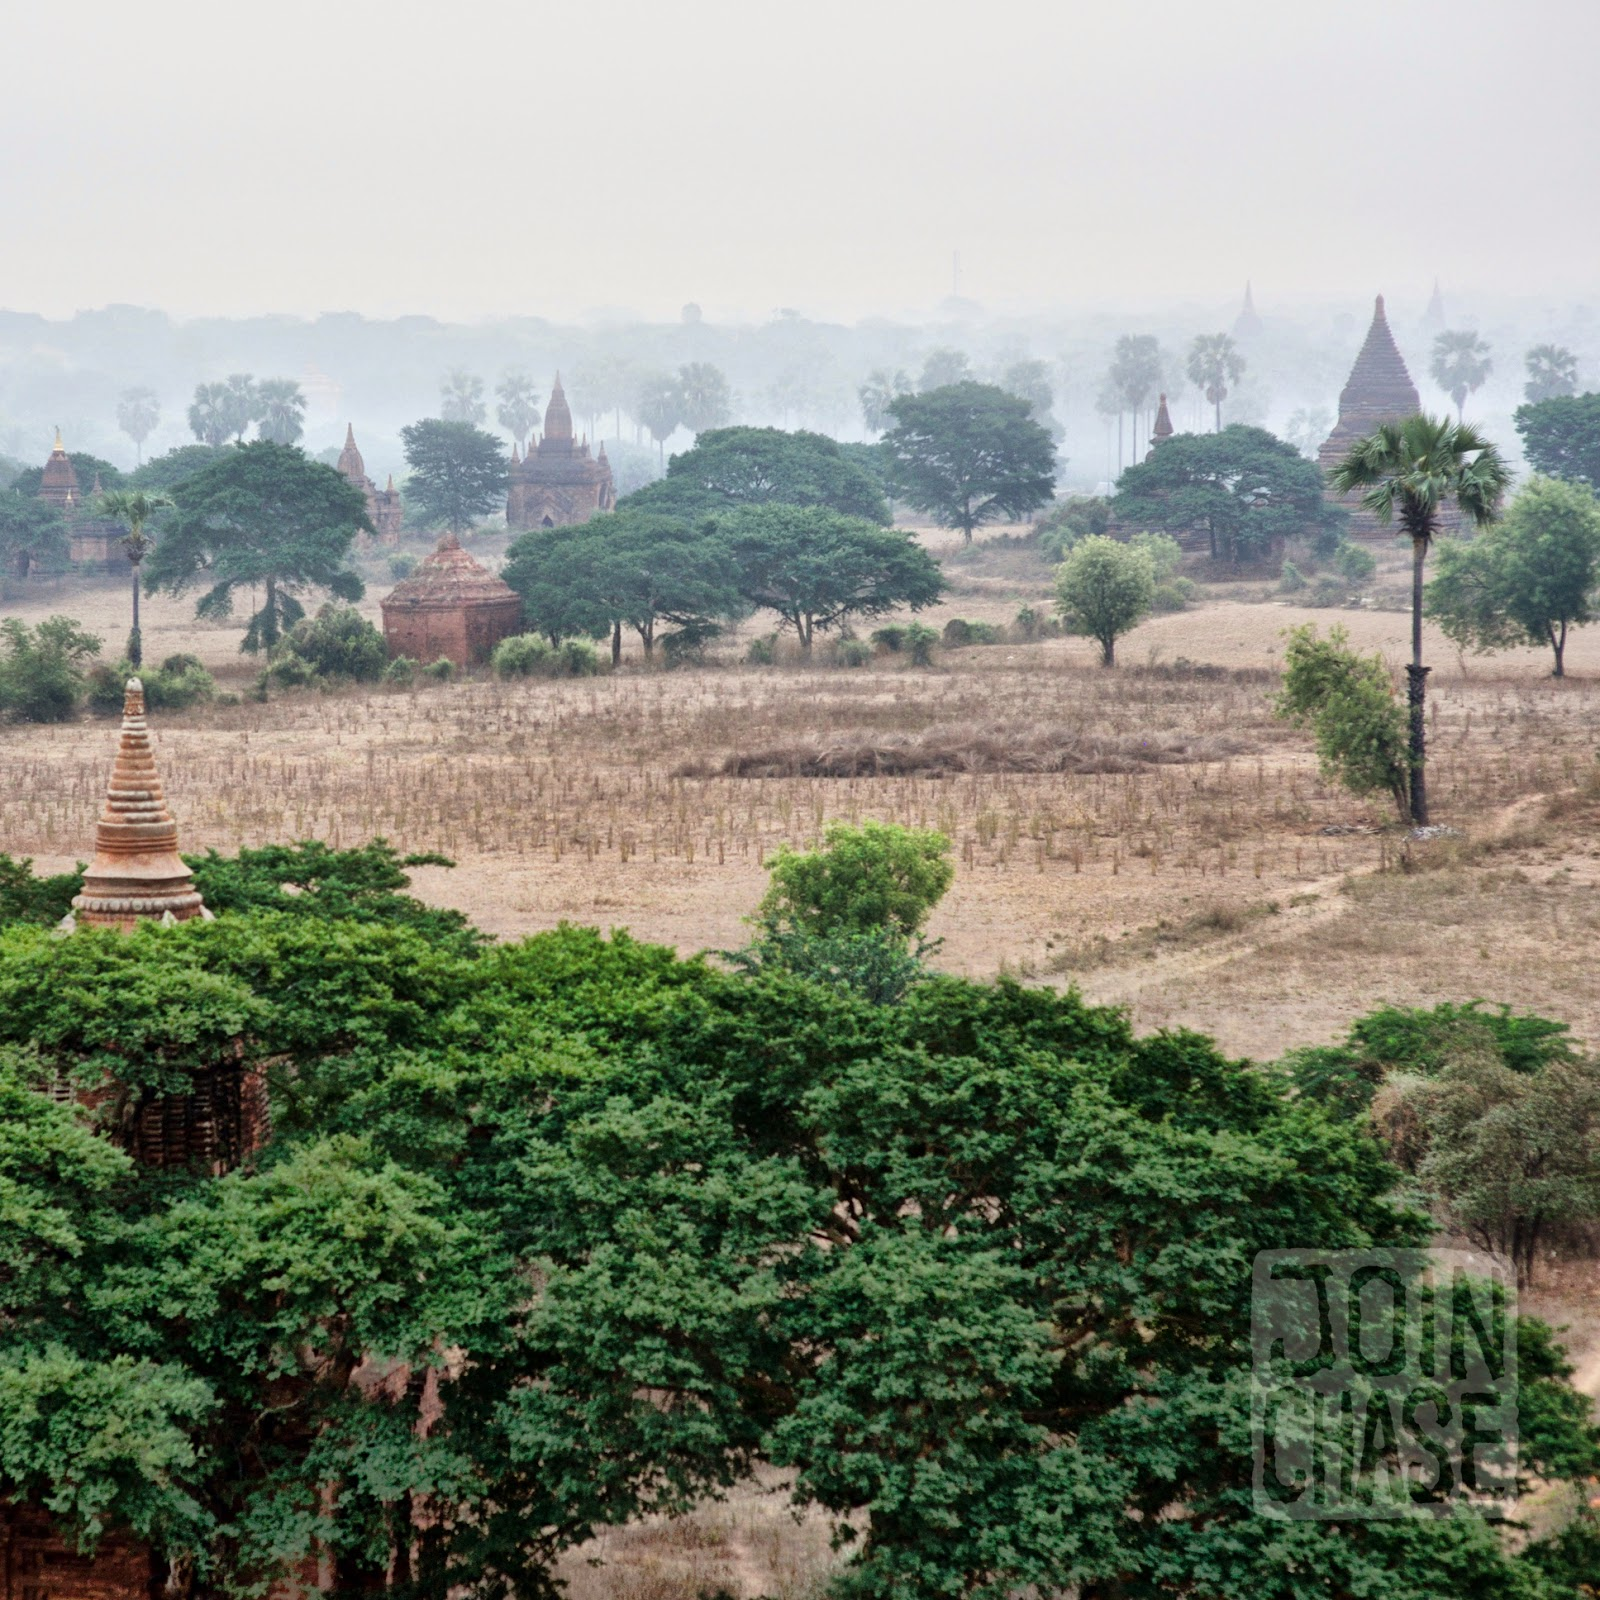 Sunrise over temples of Old Bagan, Myanmar.